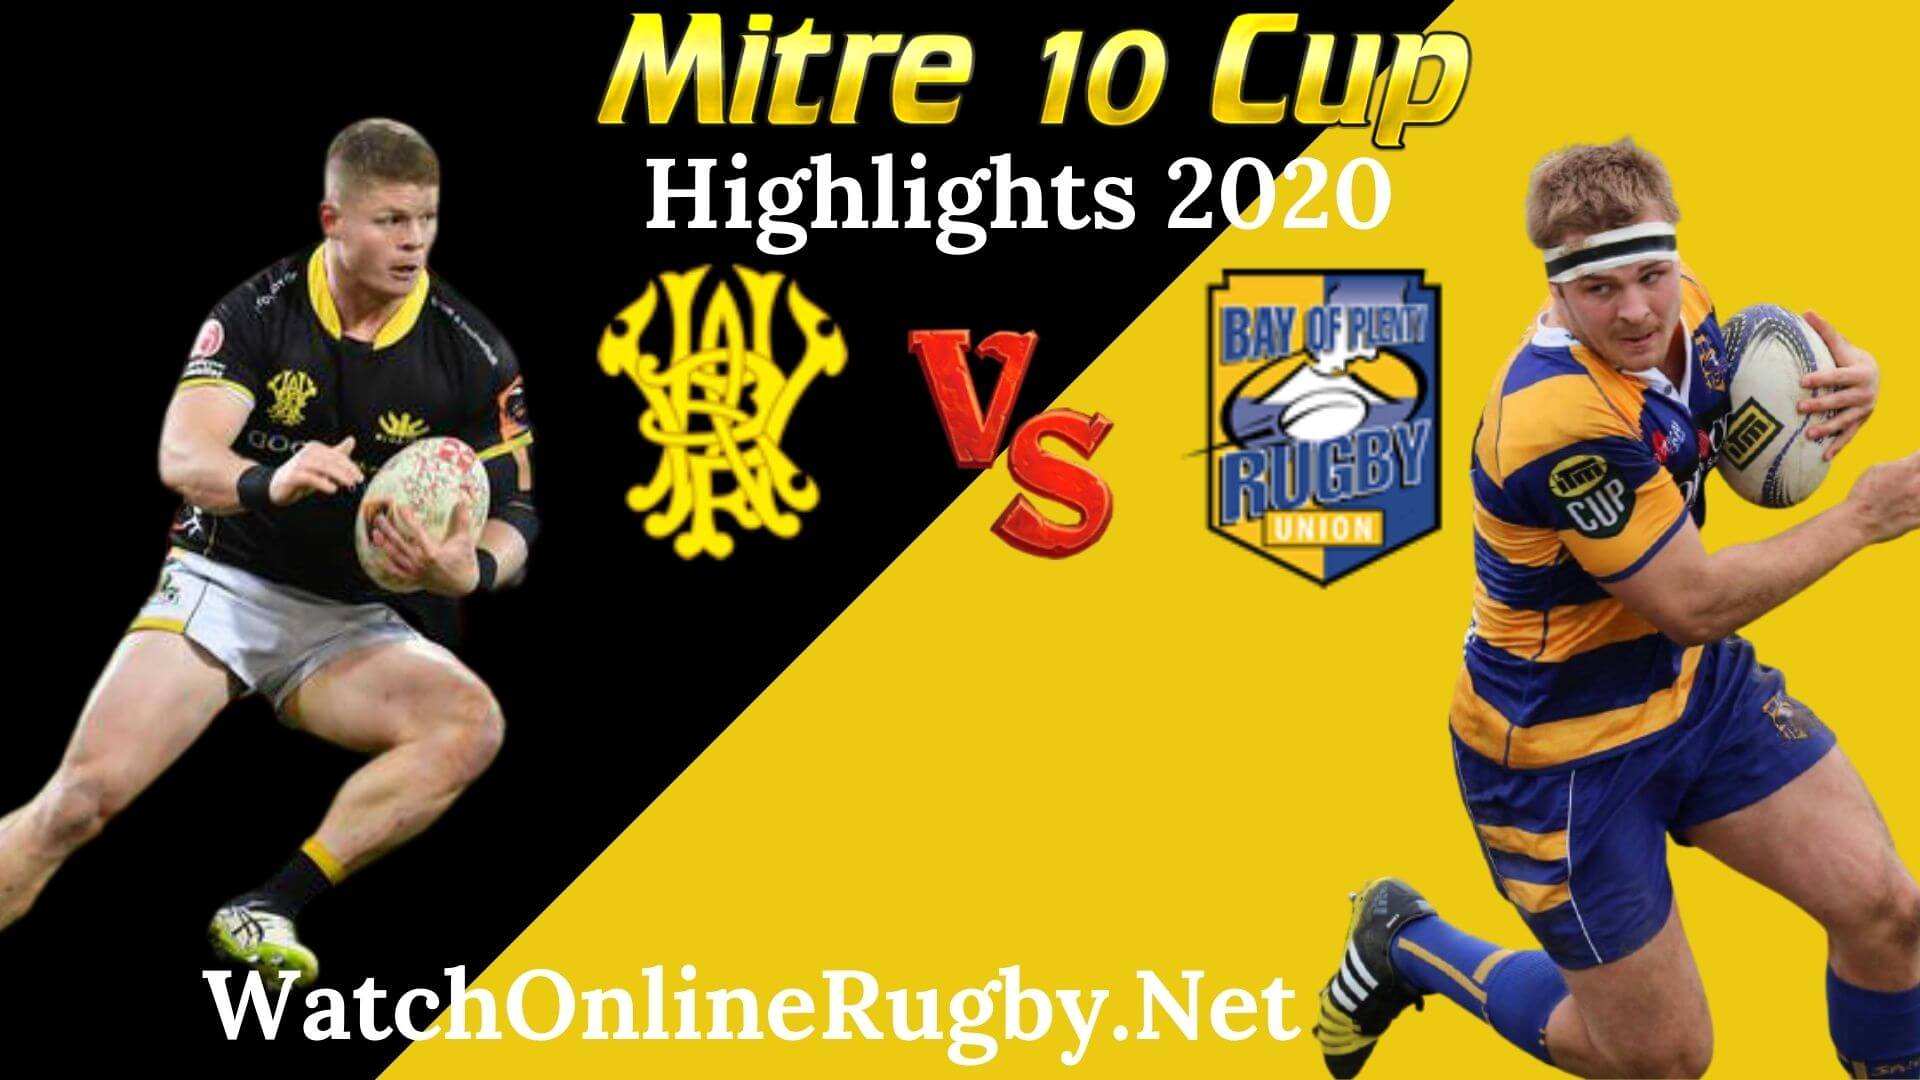 Wellington vs Bay of Plenty RD 3 Highlights 2020 M10 Cup